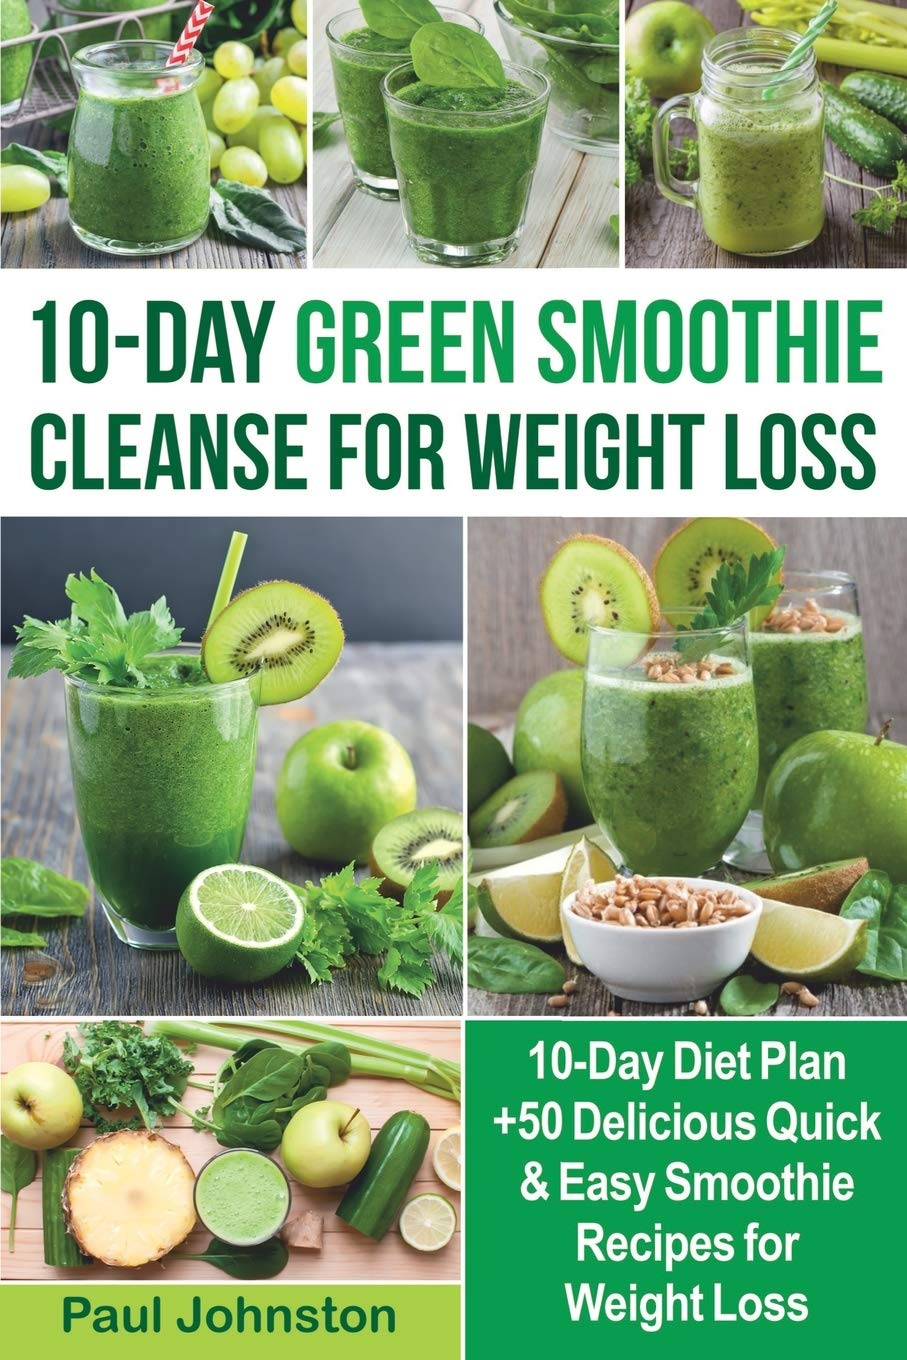 10 Day Green Smoothie Cleanse For Weight Loss 10 Day Diet Plan 50 Delicious Quick Easy Smoothie Recipes For Weight Loss Veggie Vegetarian Meal Plan Sugar Cravings Detox Cookbook Plant Based Johnston Paul